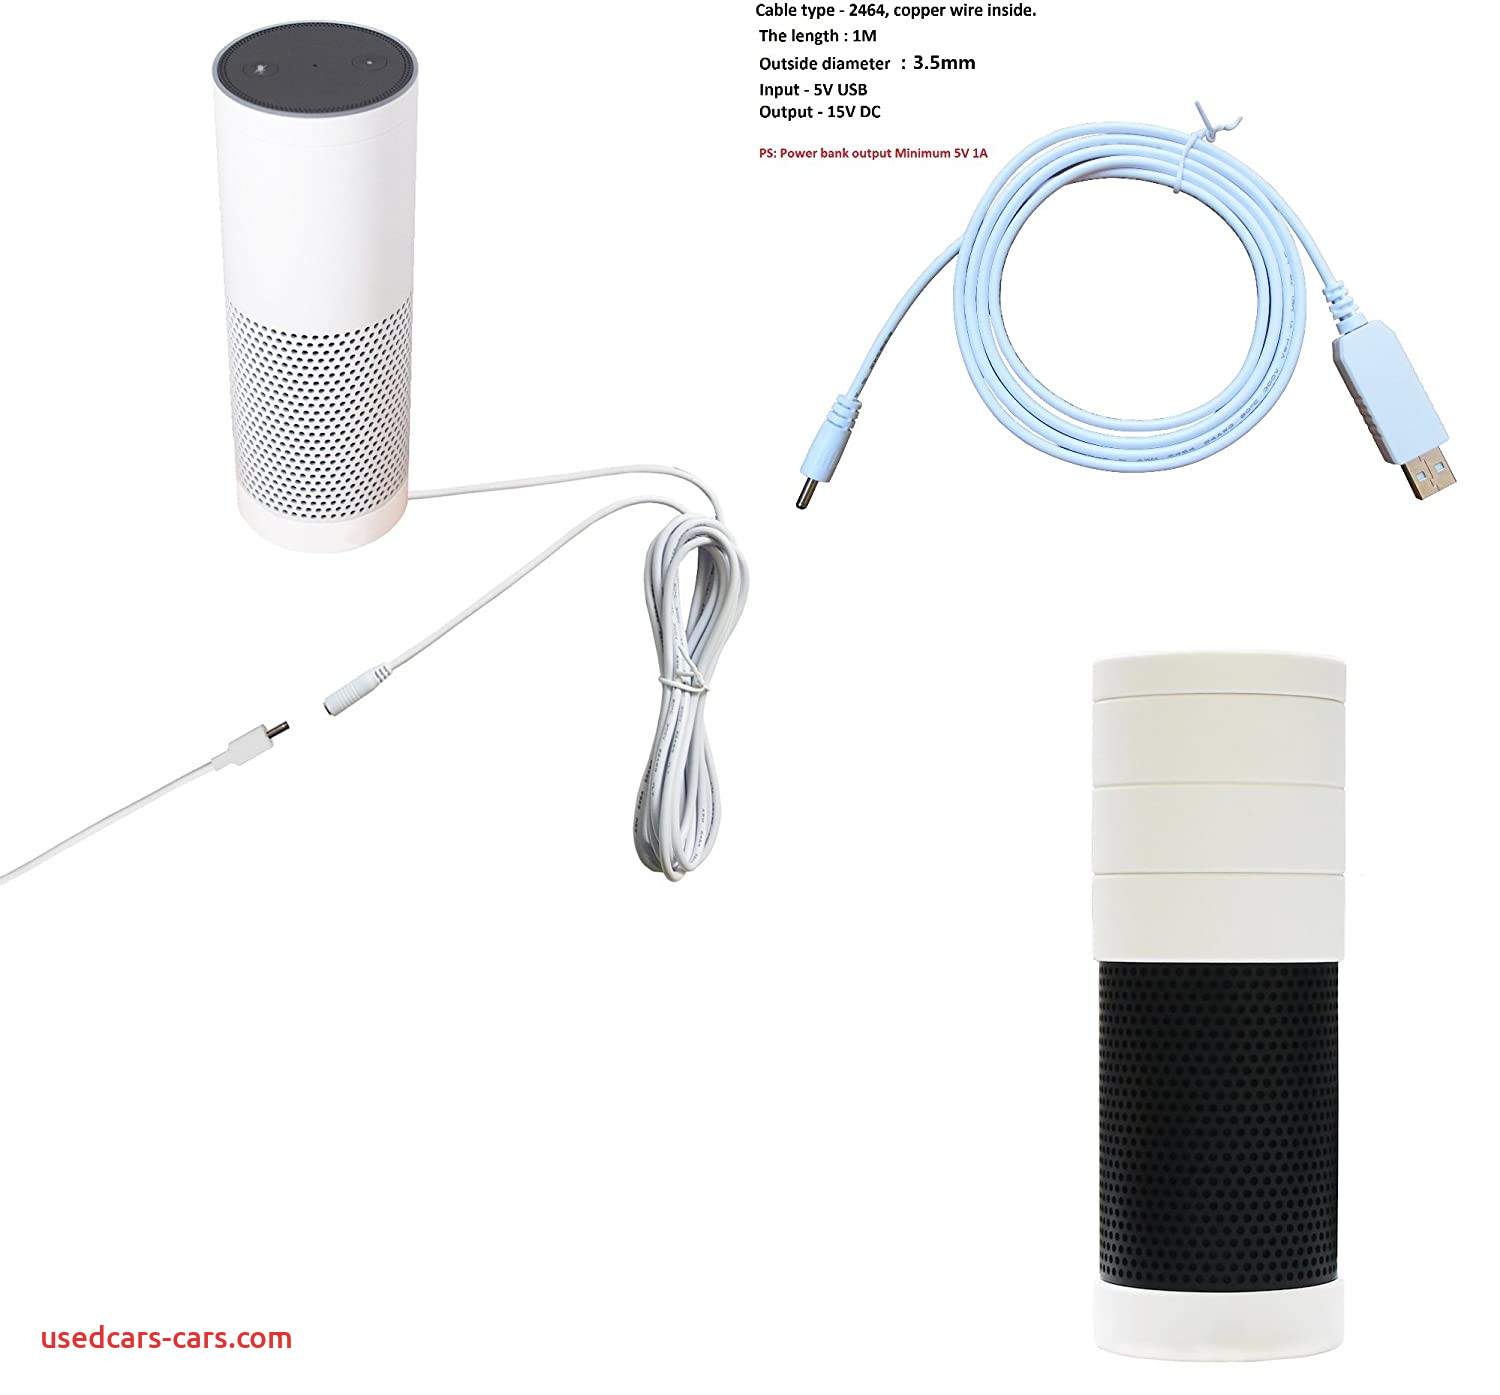 Amazon Echo Specs Fresh Meres 3 In 1 Echo Accessories Kit 3m Extension Cable Cord 1m Usb Power Charge Cable Silicone Skin Cover Case for Echo White